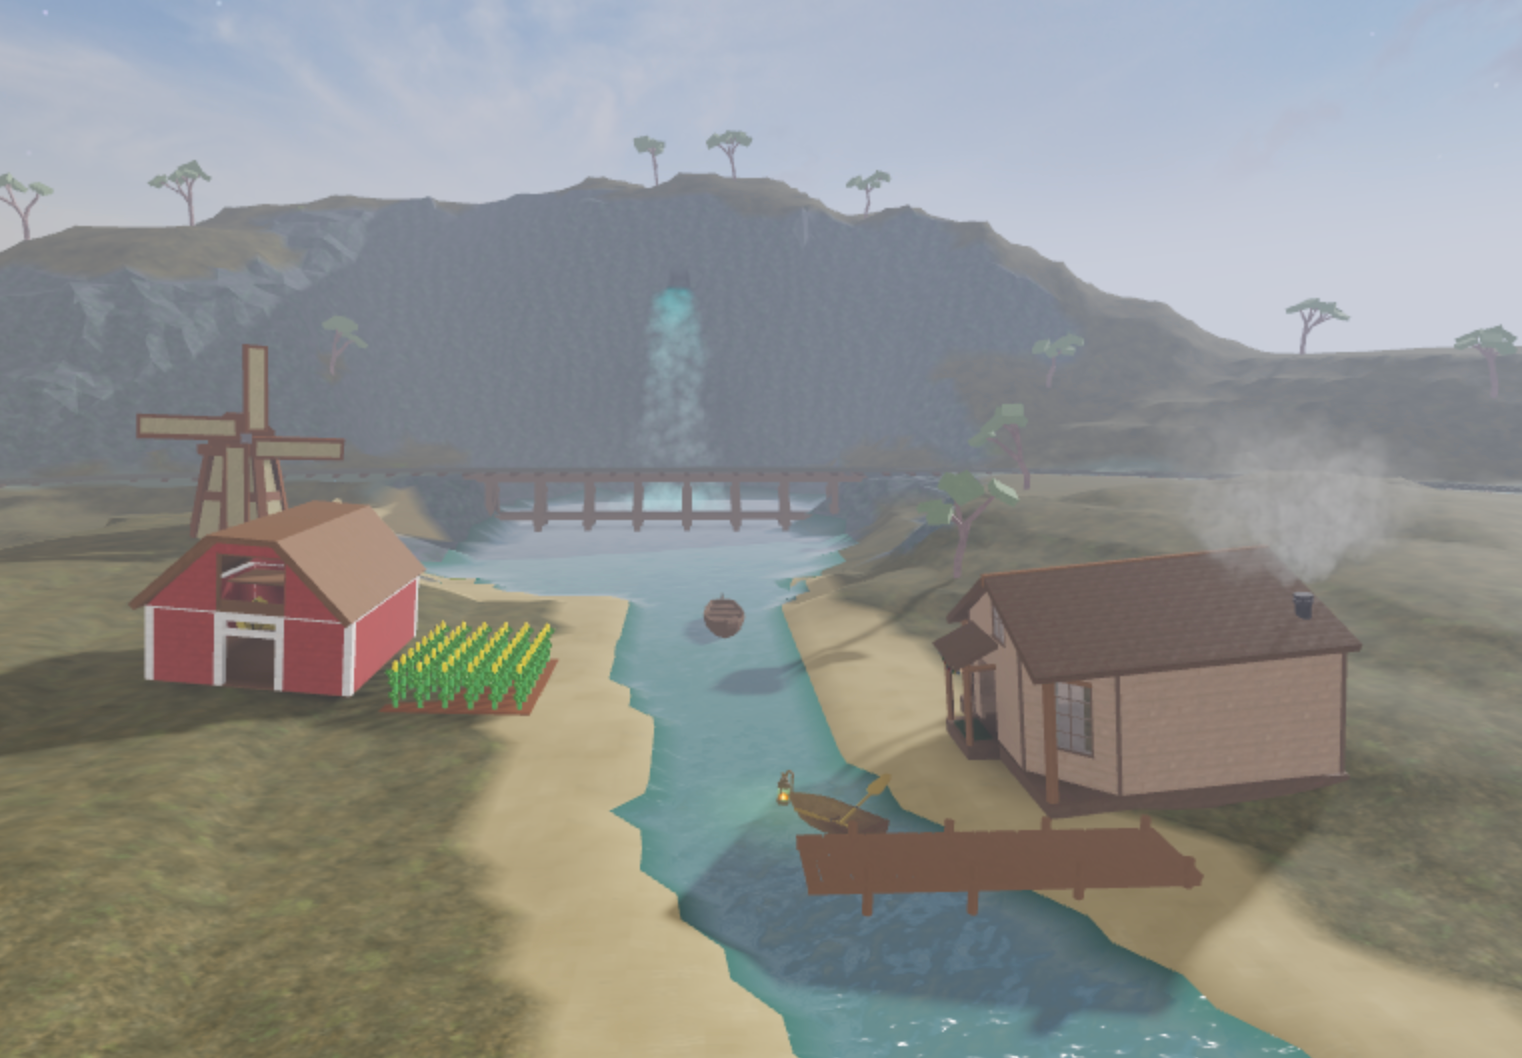 Join other Roblox world builders to design a thriving community on the edge of a rushing river!